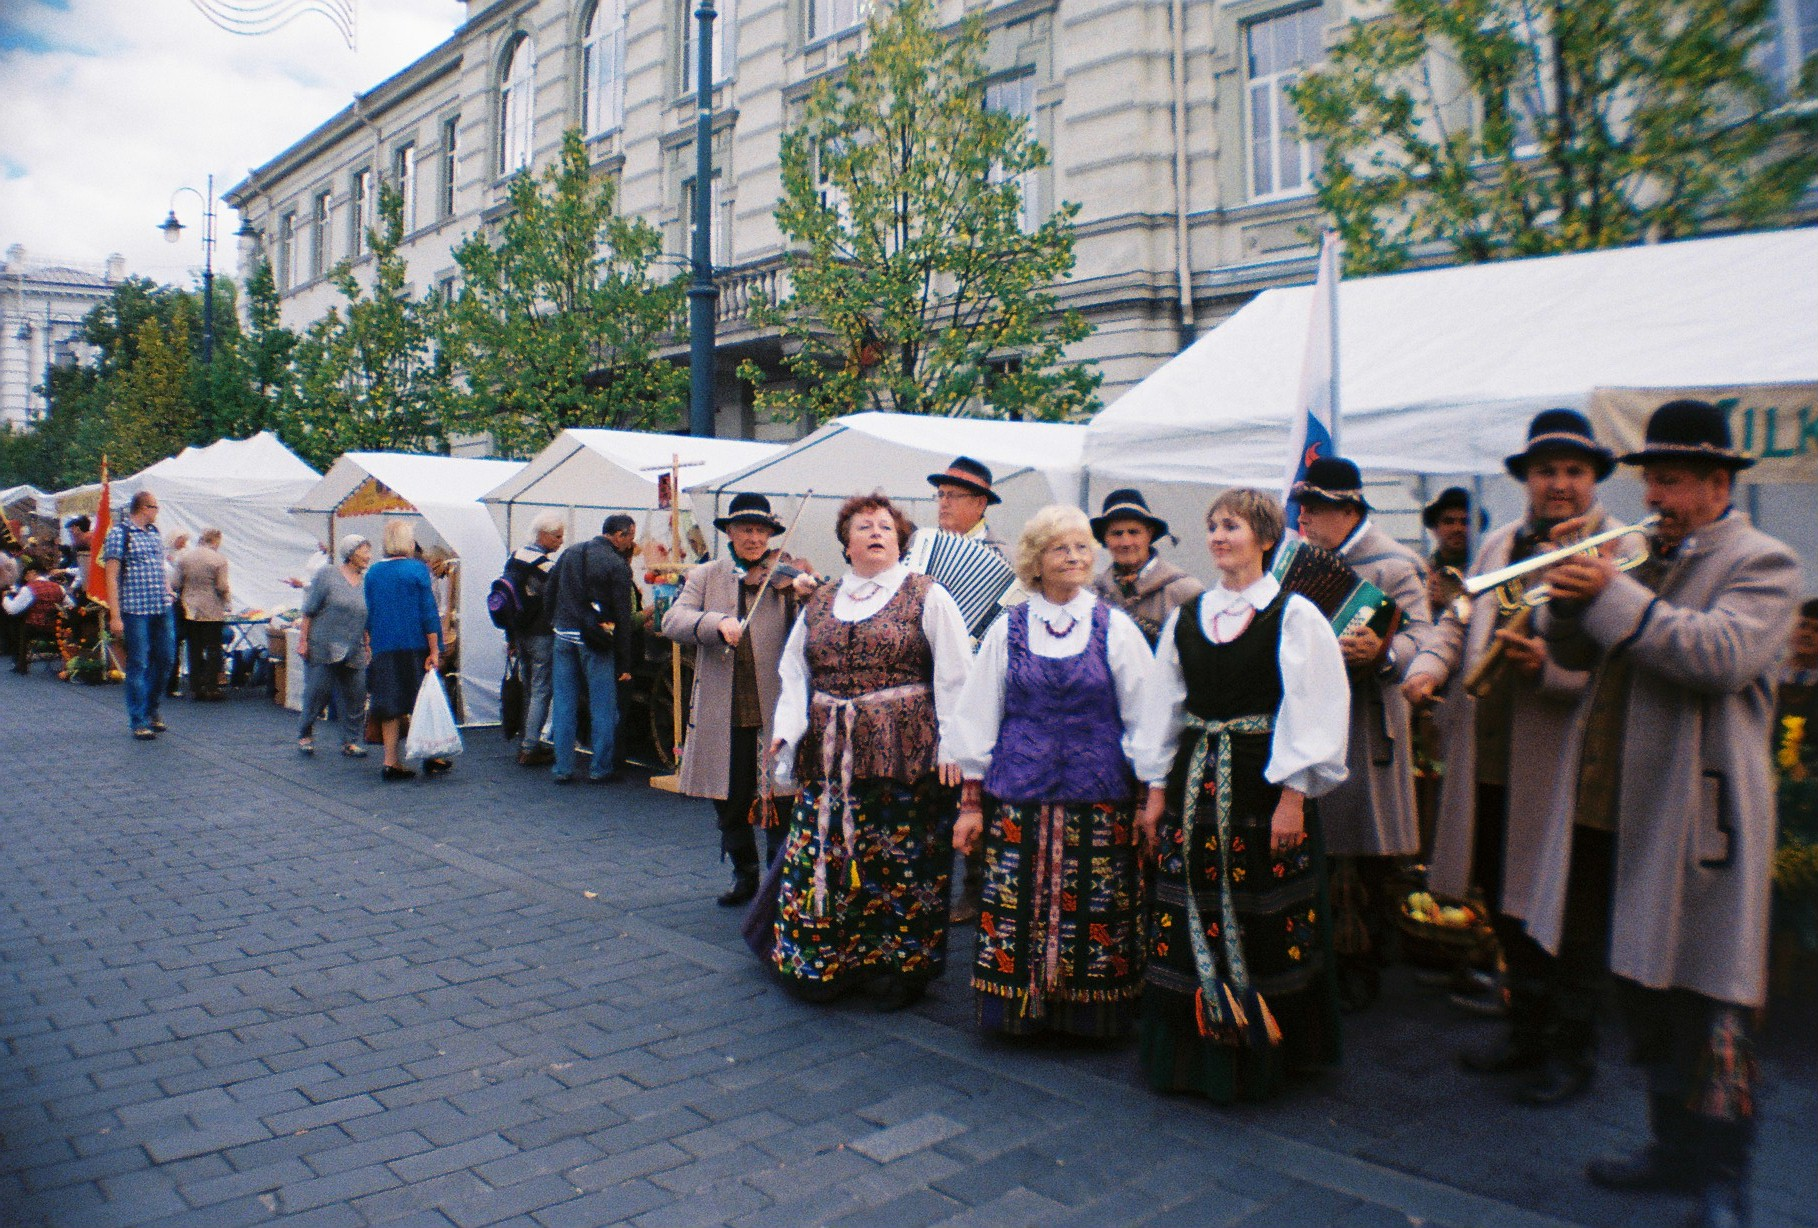 Women in traditional outfits outside open-air market